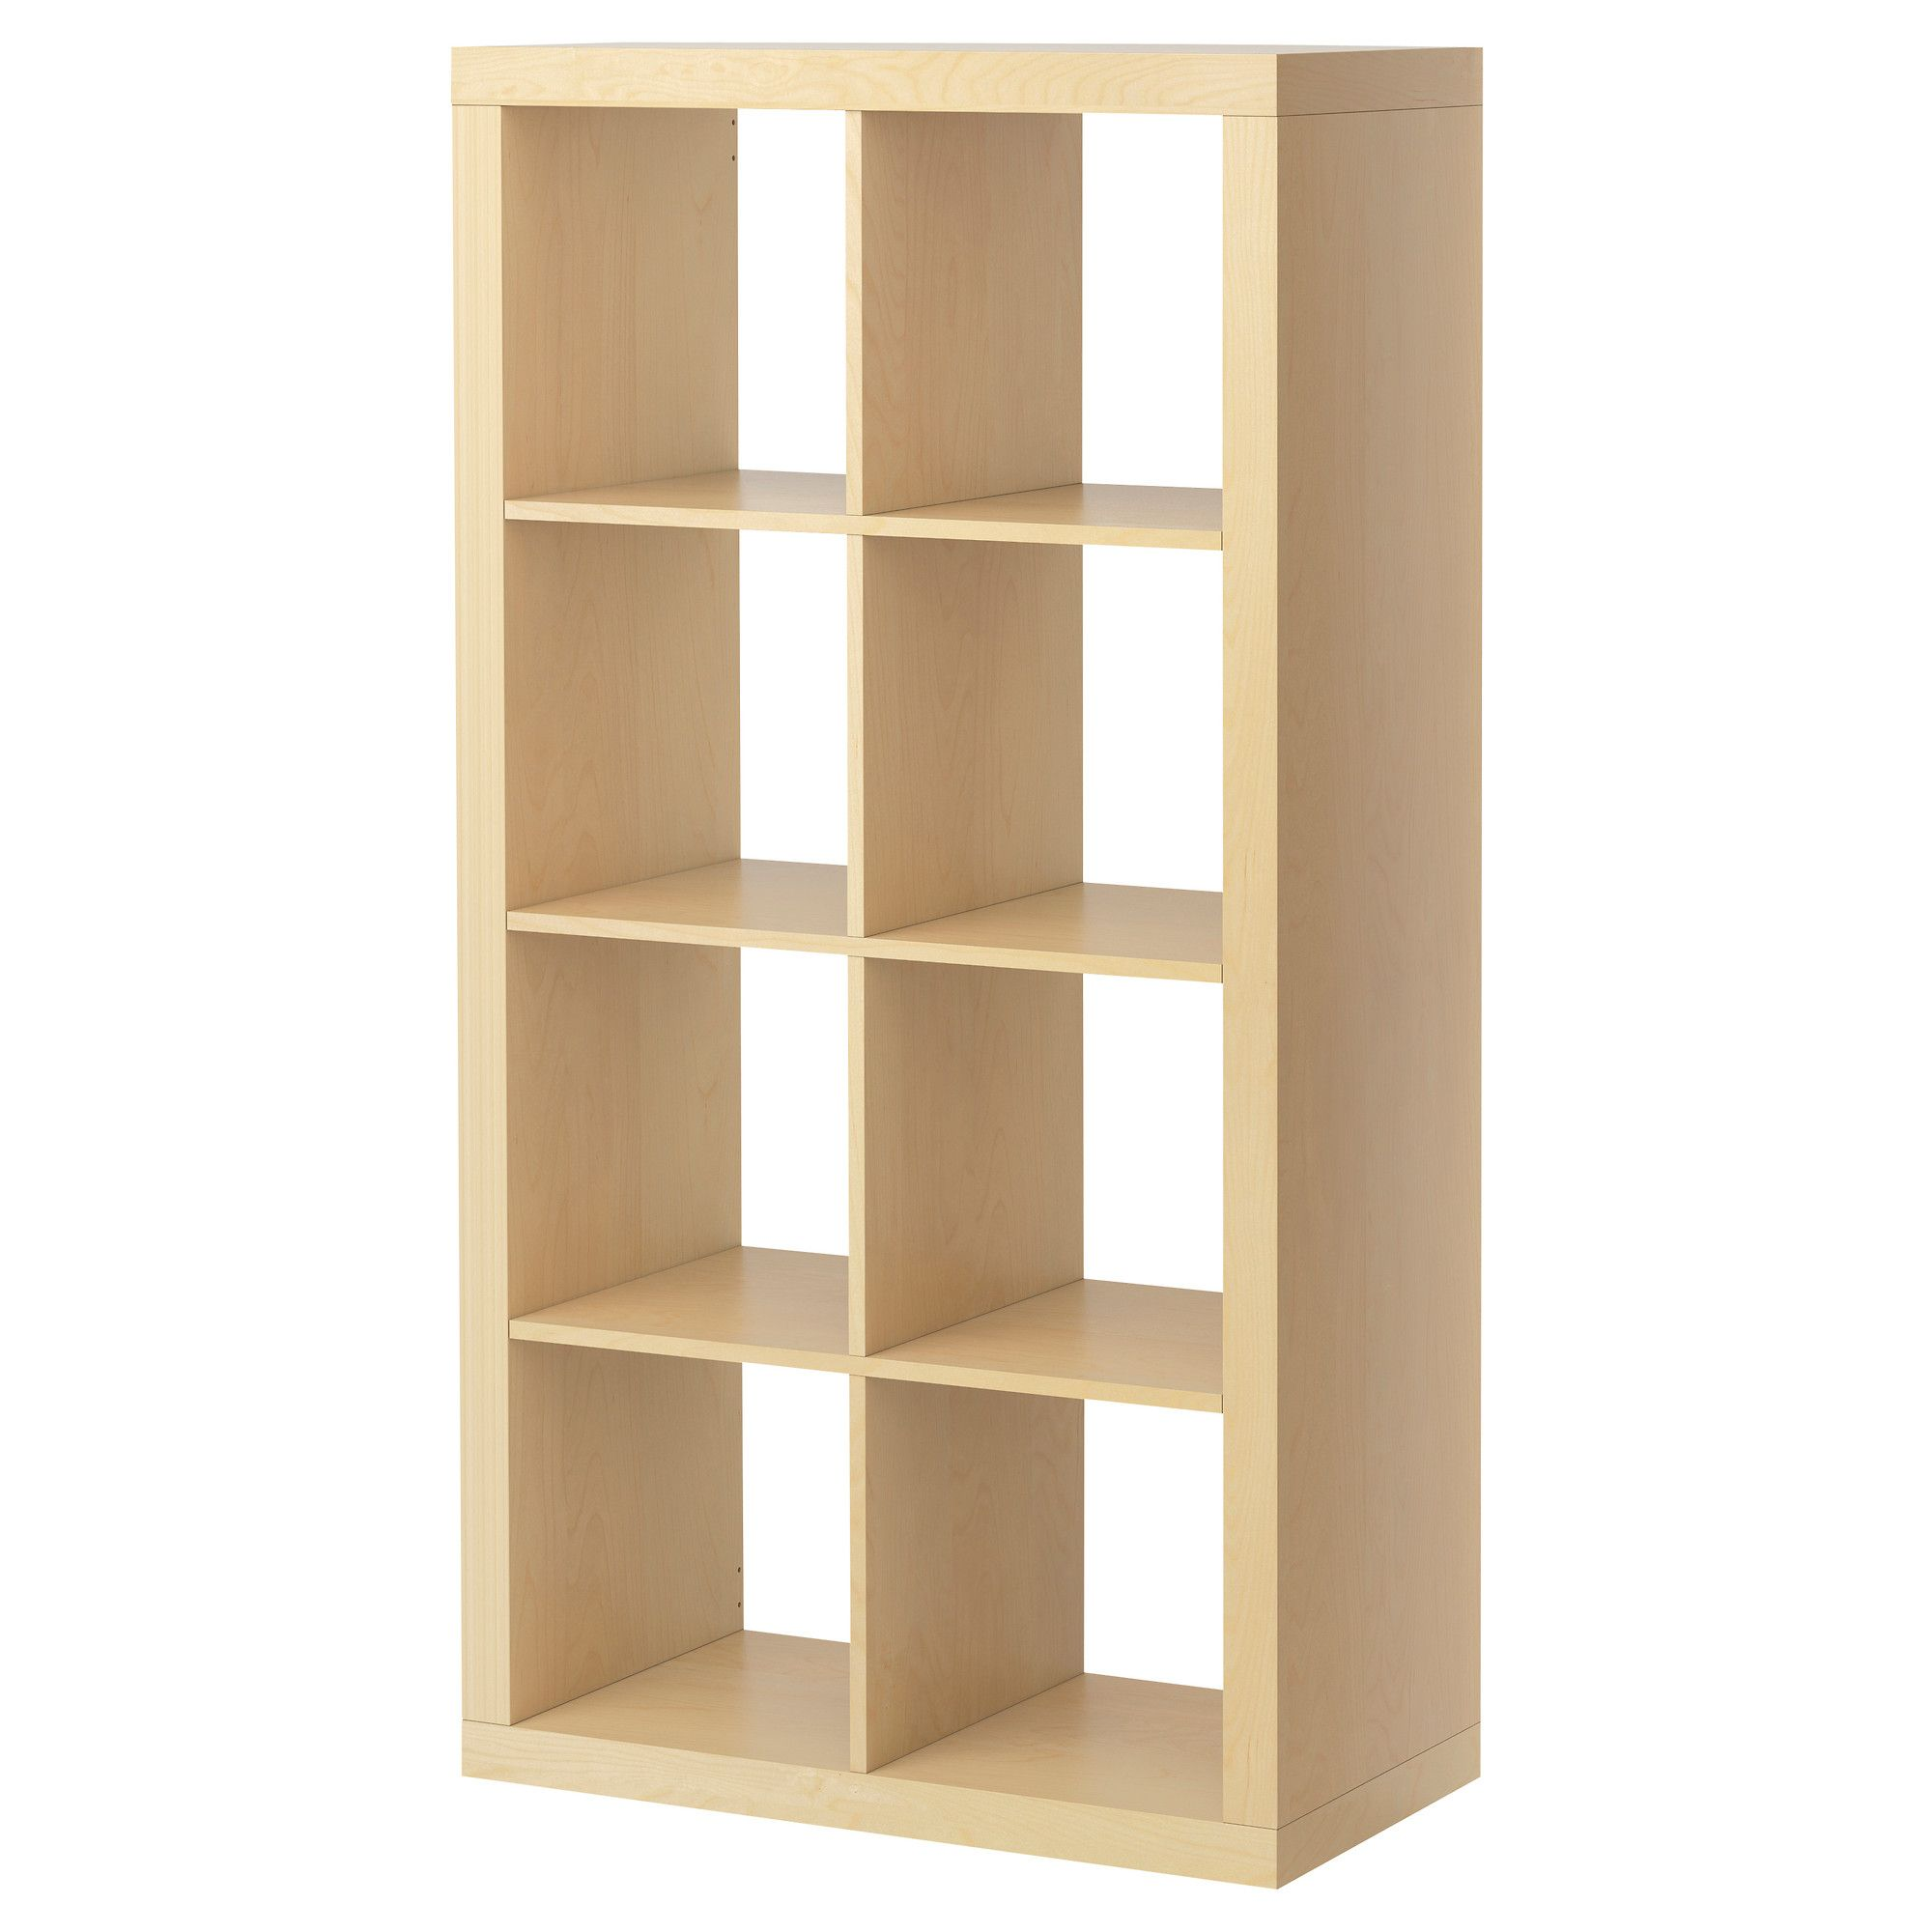 EXPEDIT Shelving Unit 6999 Product Dimensions Width 31 1 8 Depth 15 3 Height 58 5 Max Load Shelf 29 Lb